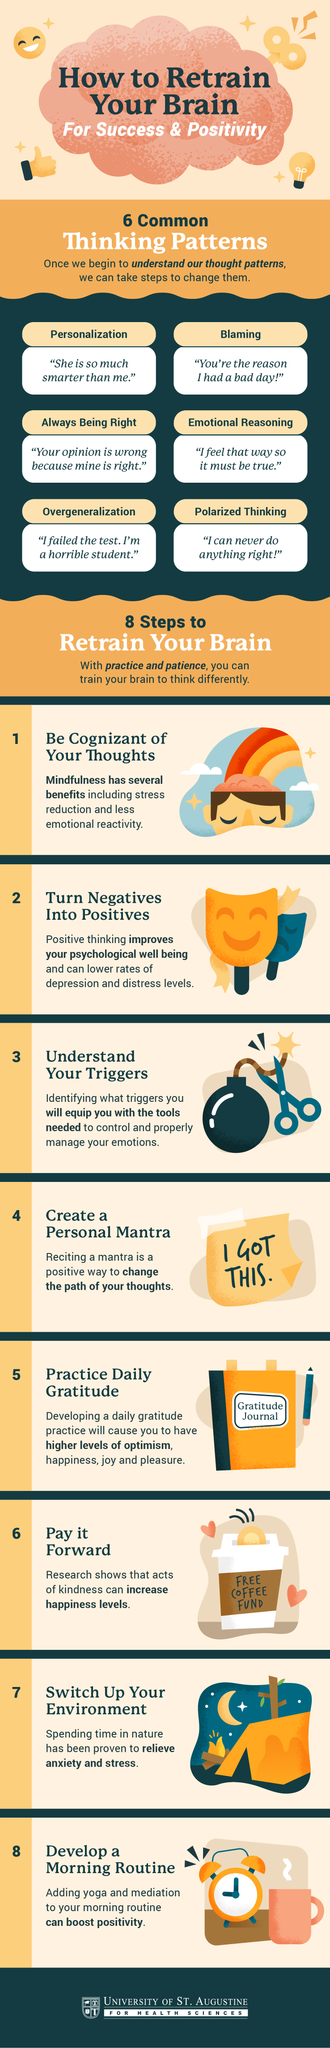 Infographic of How to Retrain Your Brain for Success and Positivity